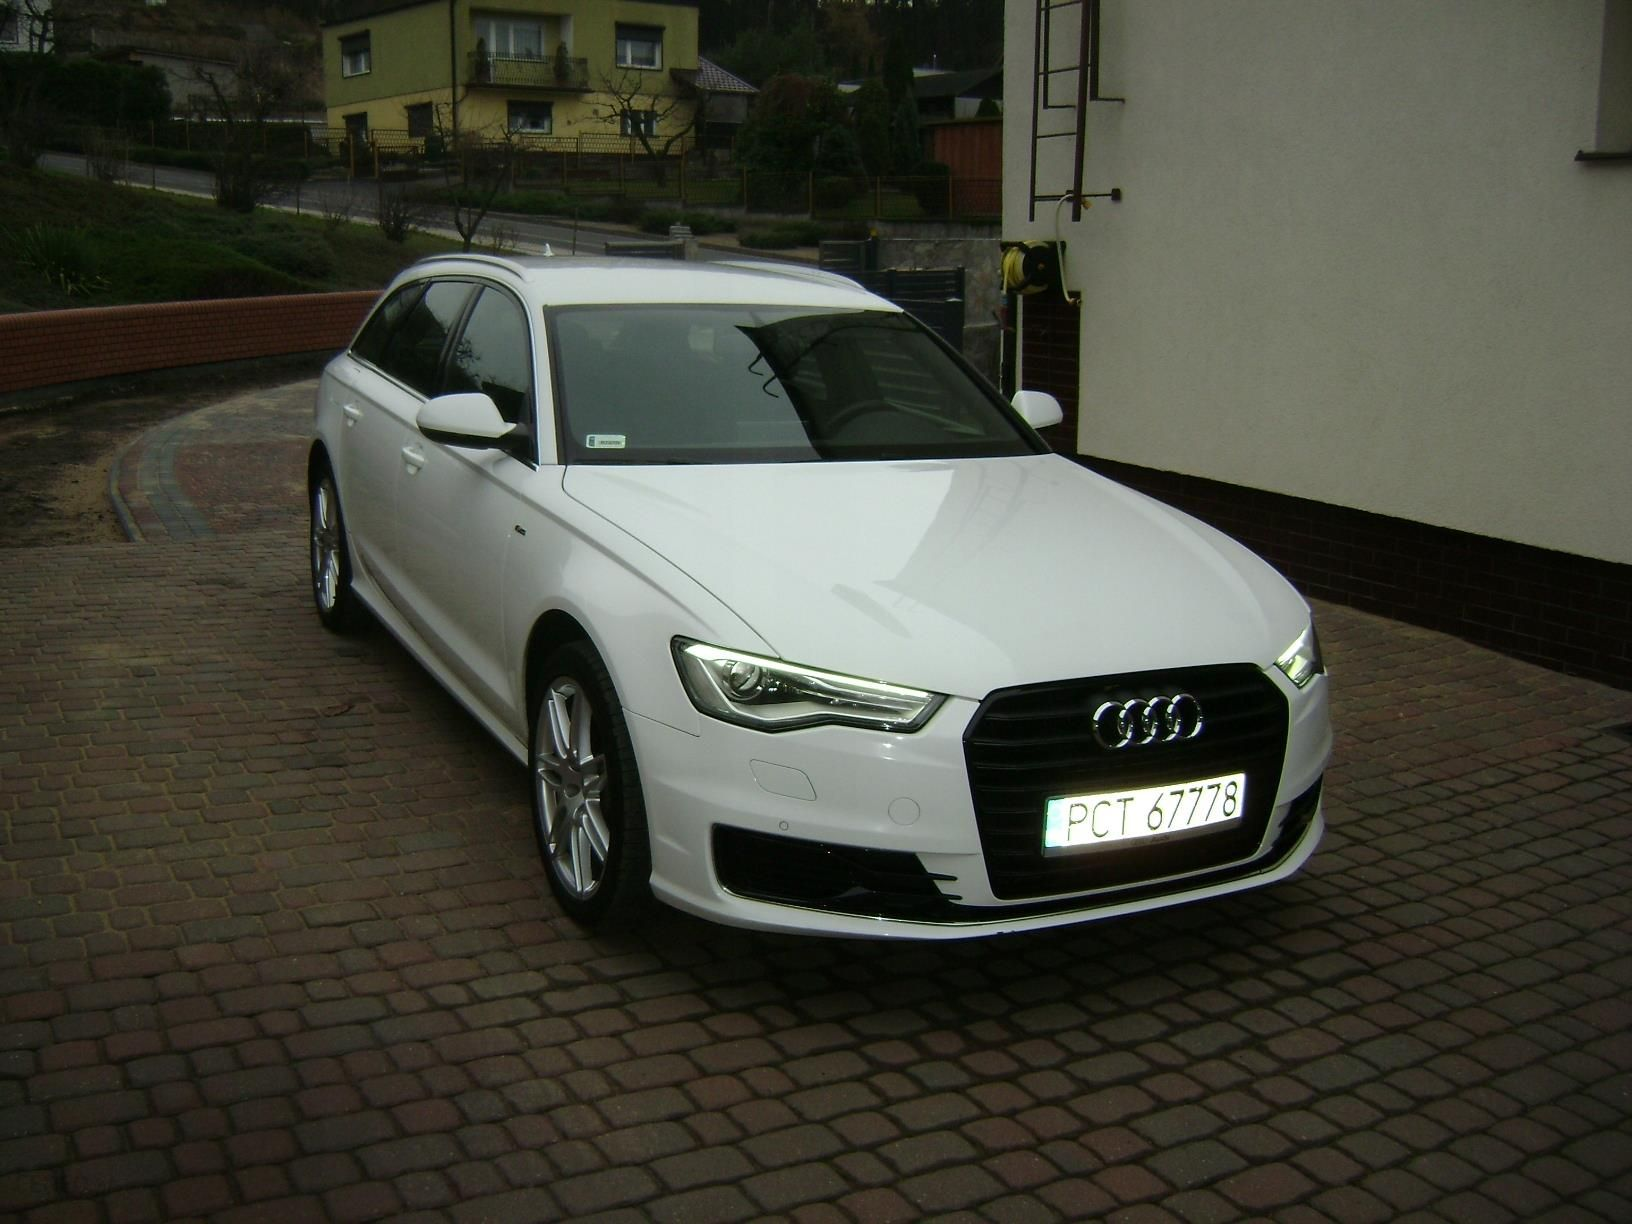 audi a6 c7 lift 190km s tronic opinie i ceny na www. Black Bedroom Furniture Sets. Home Design Ideas